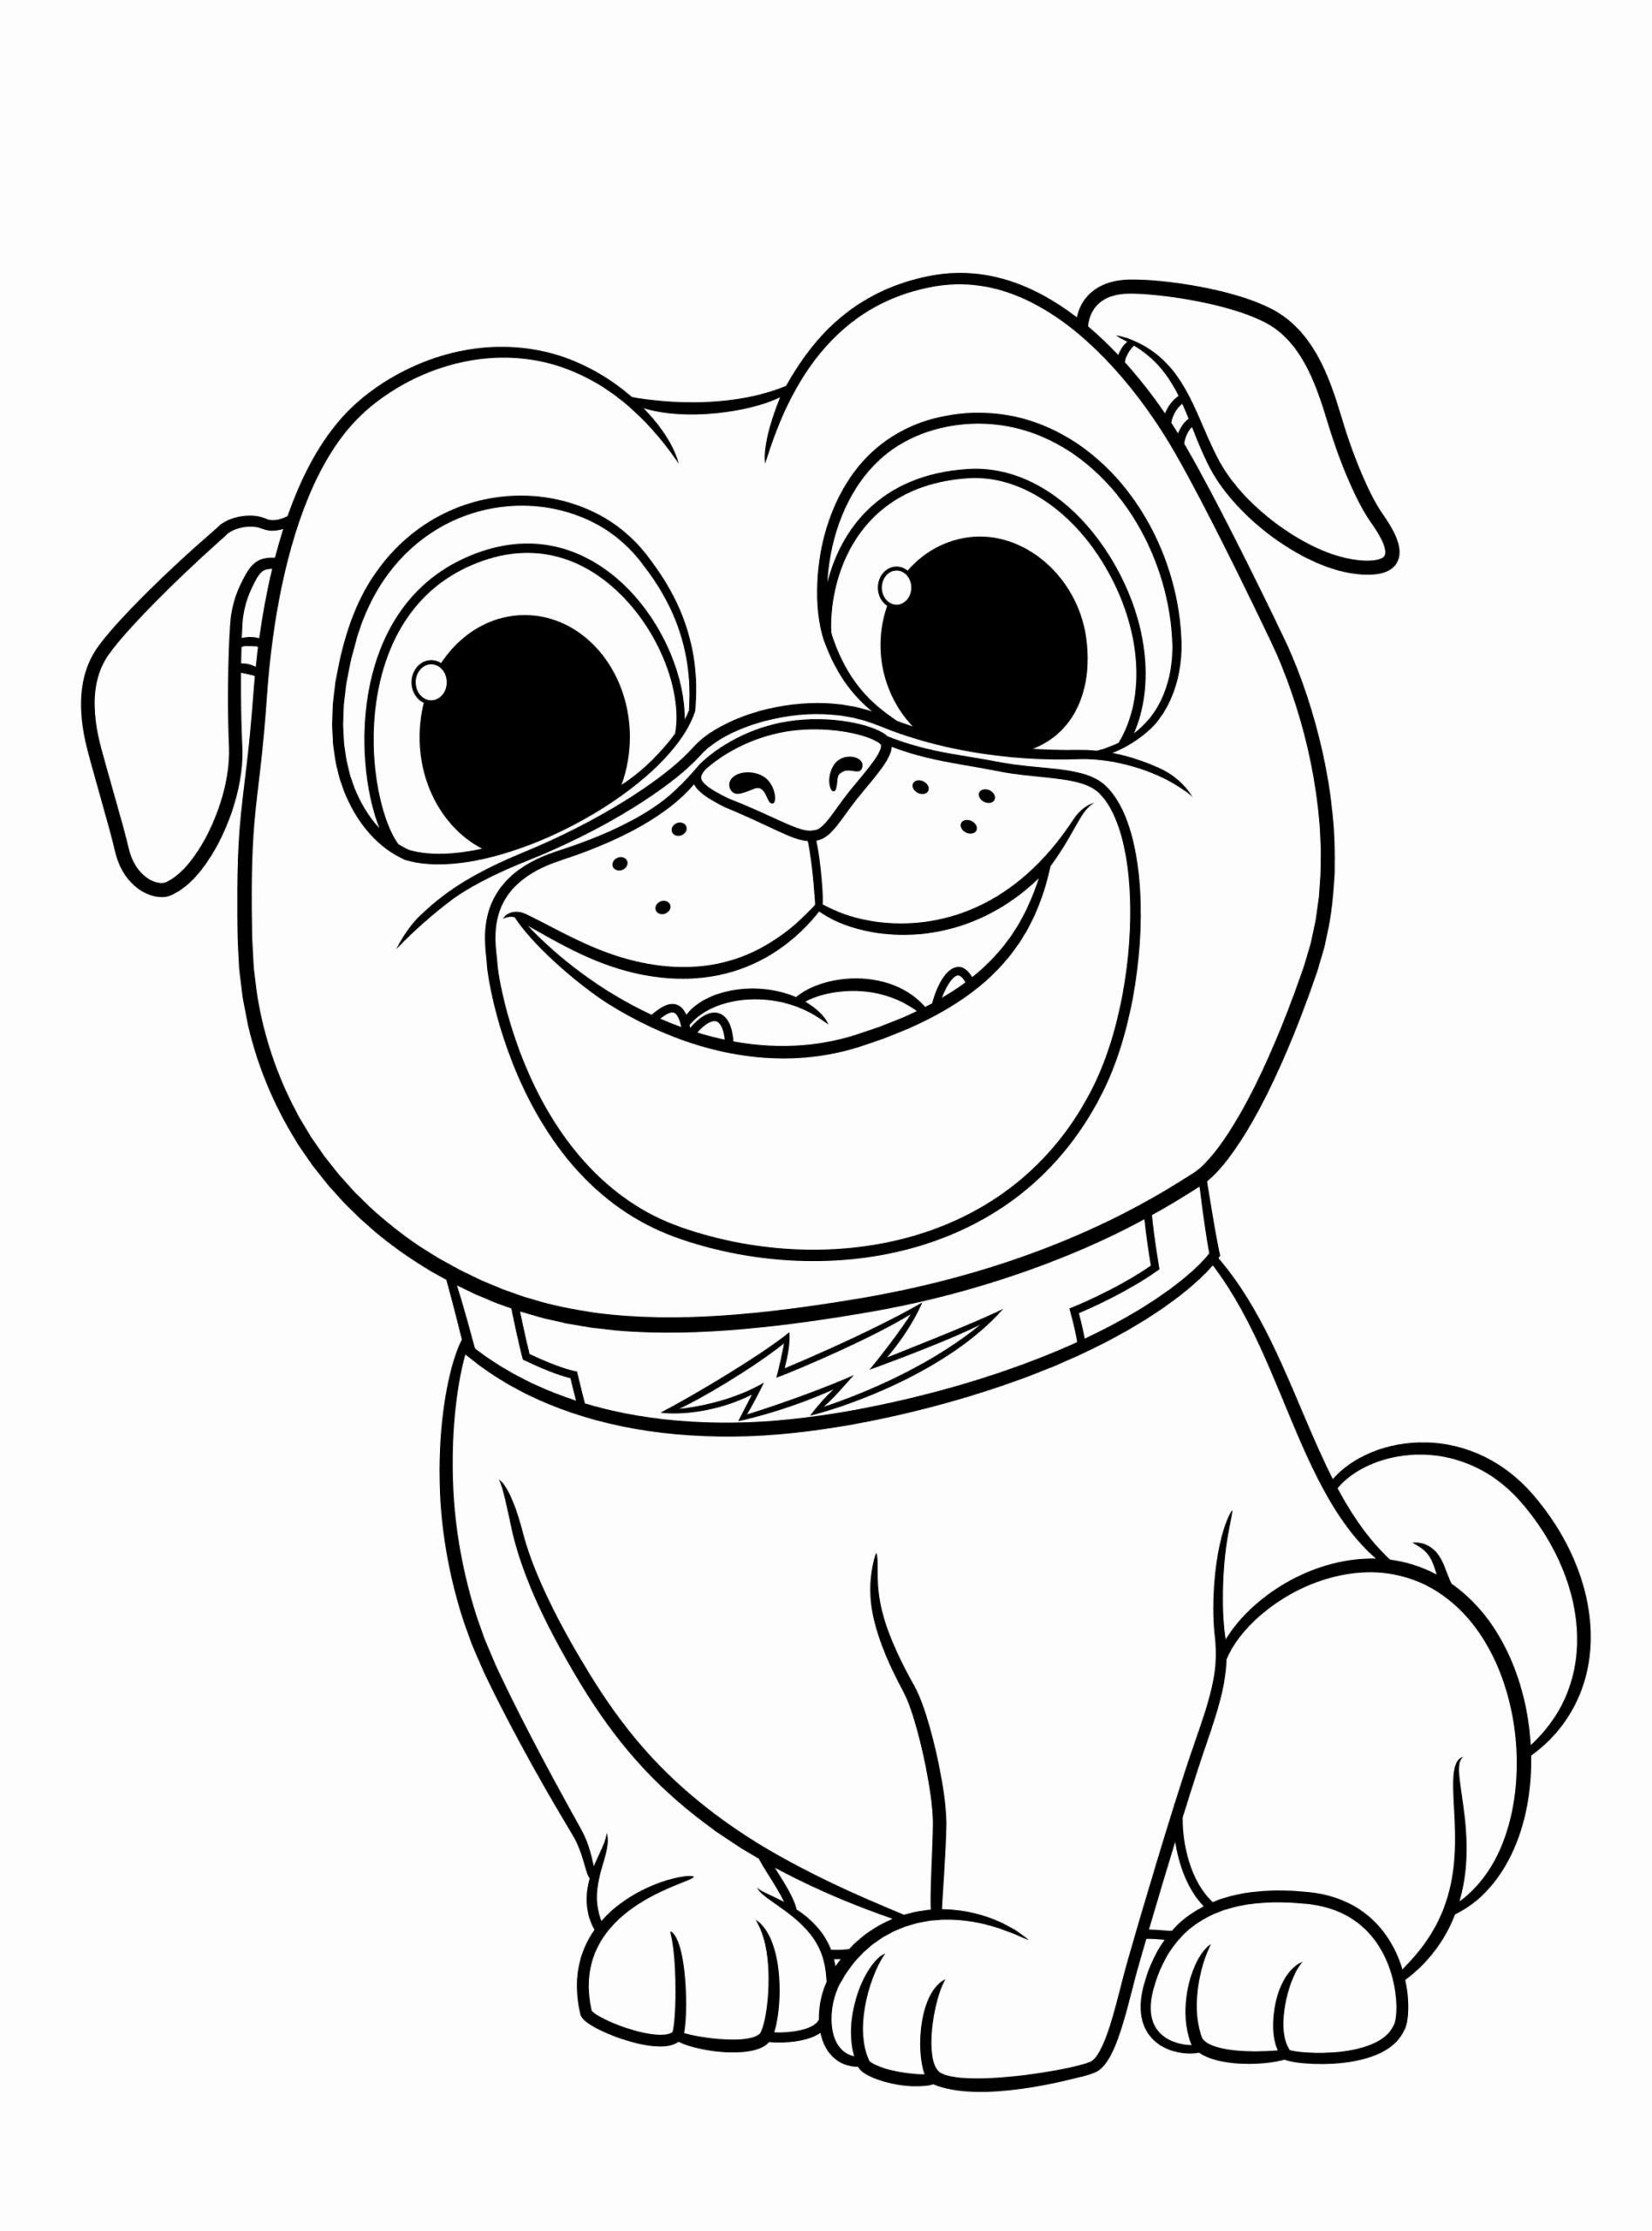 Puppy Dog Pals Coloring Page Awesome Puppy Dog Pals Coloring Pages To And Print For Free Puppy Coloring Pages Dog Coloring Page Unicorn Coloring Pages